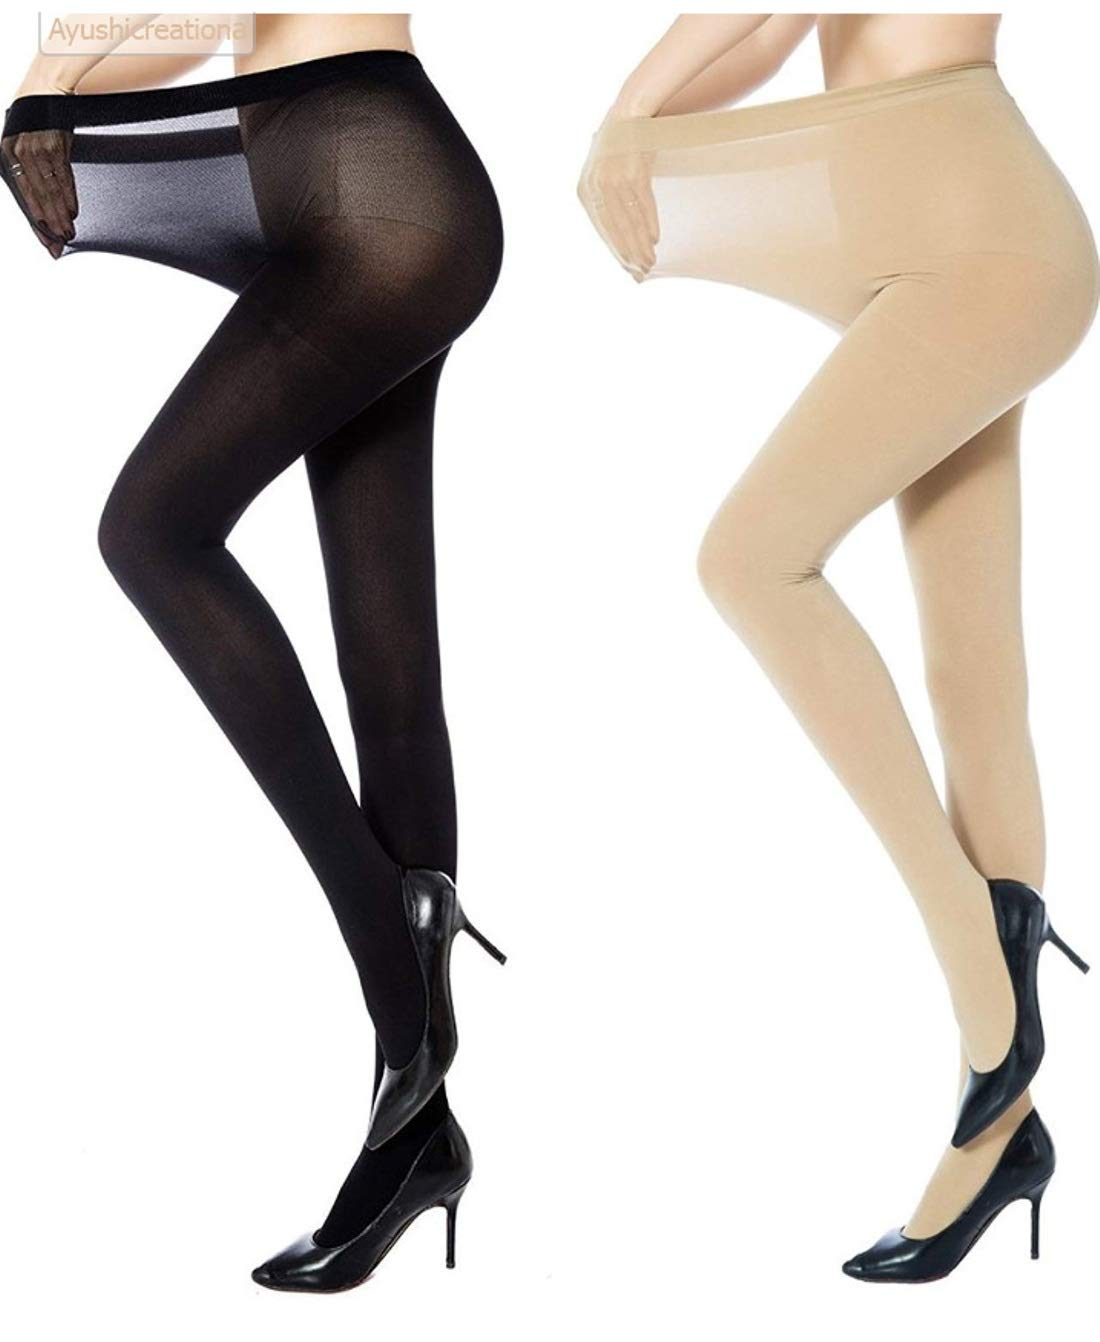 Free pantyhose high heels are